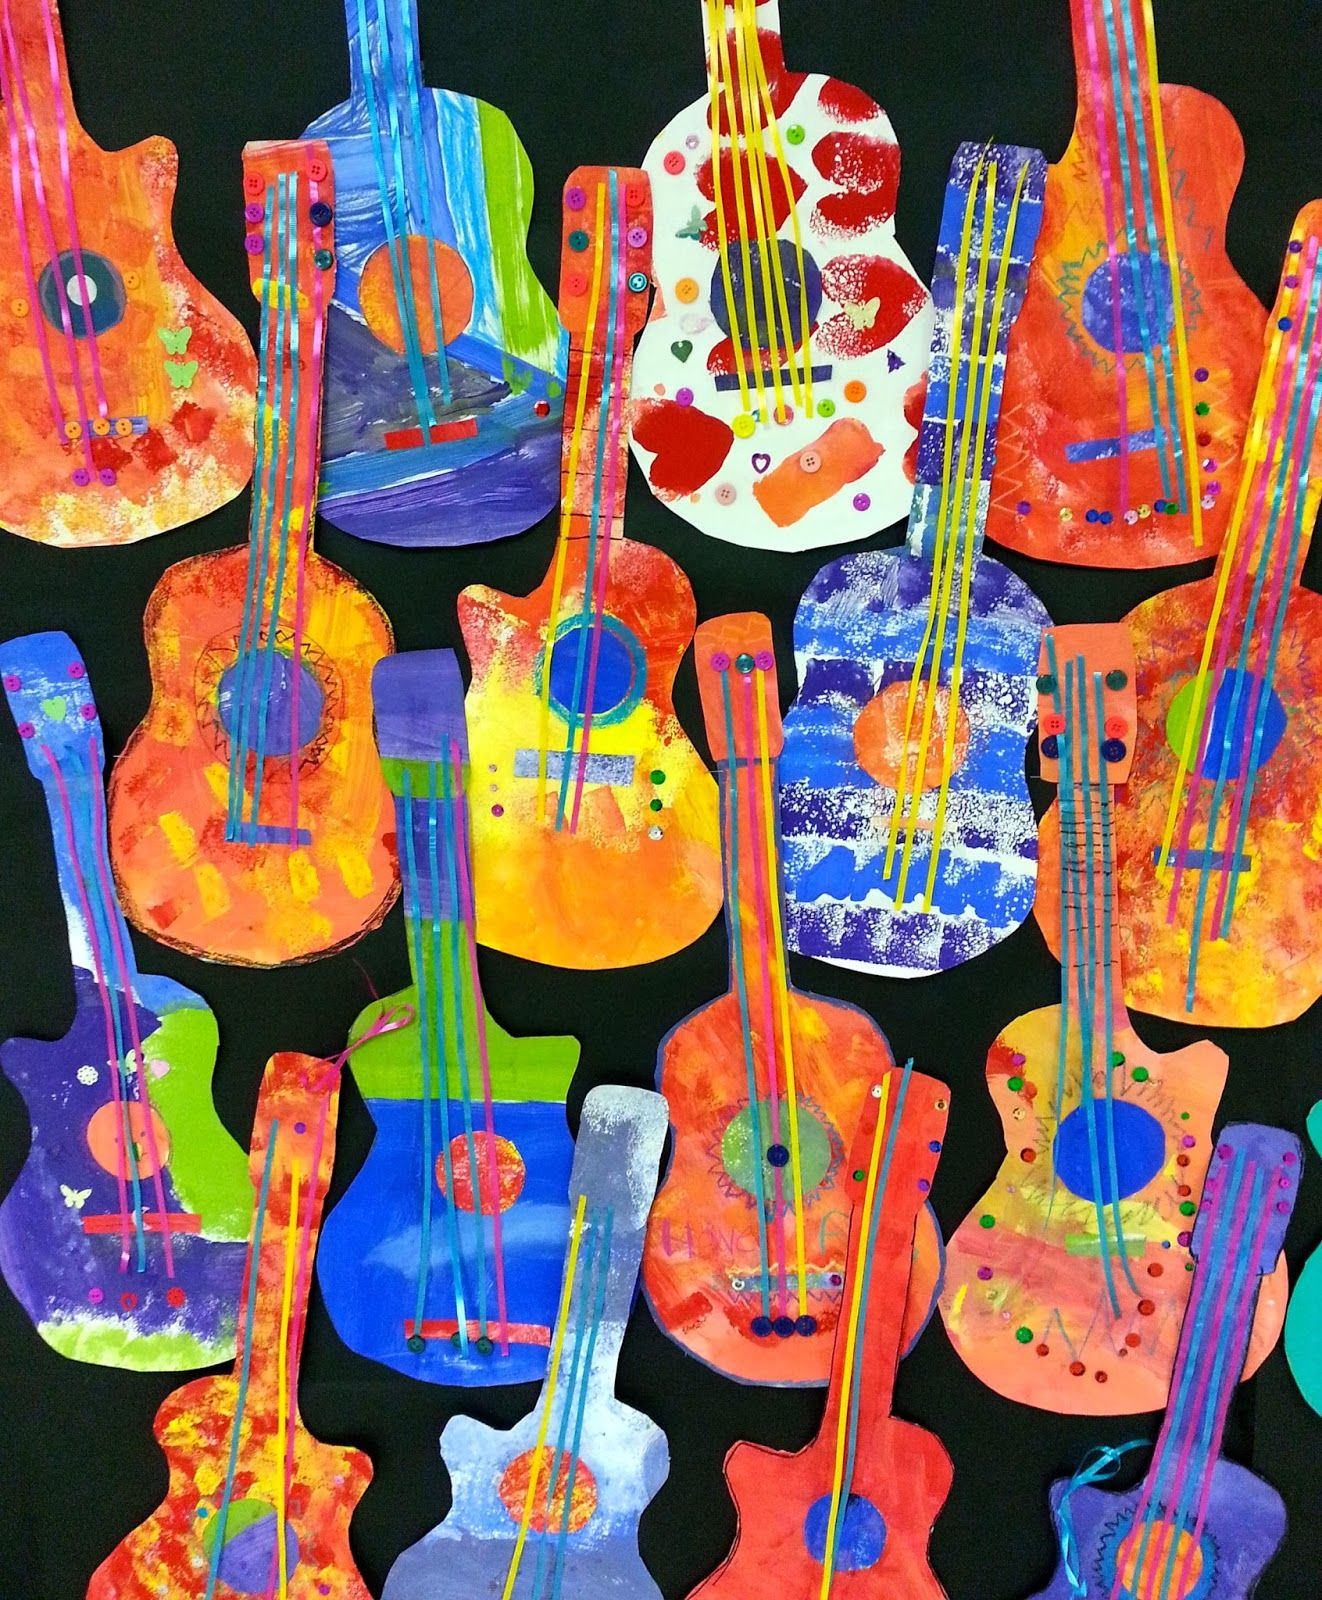 Las Guitarras De Paracho 3rd 4th